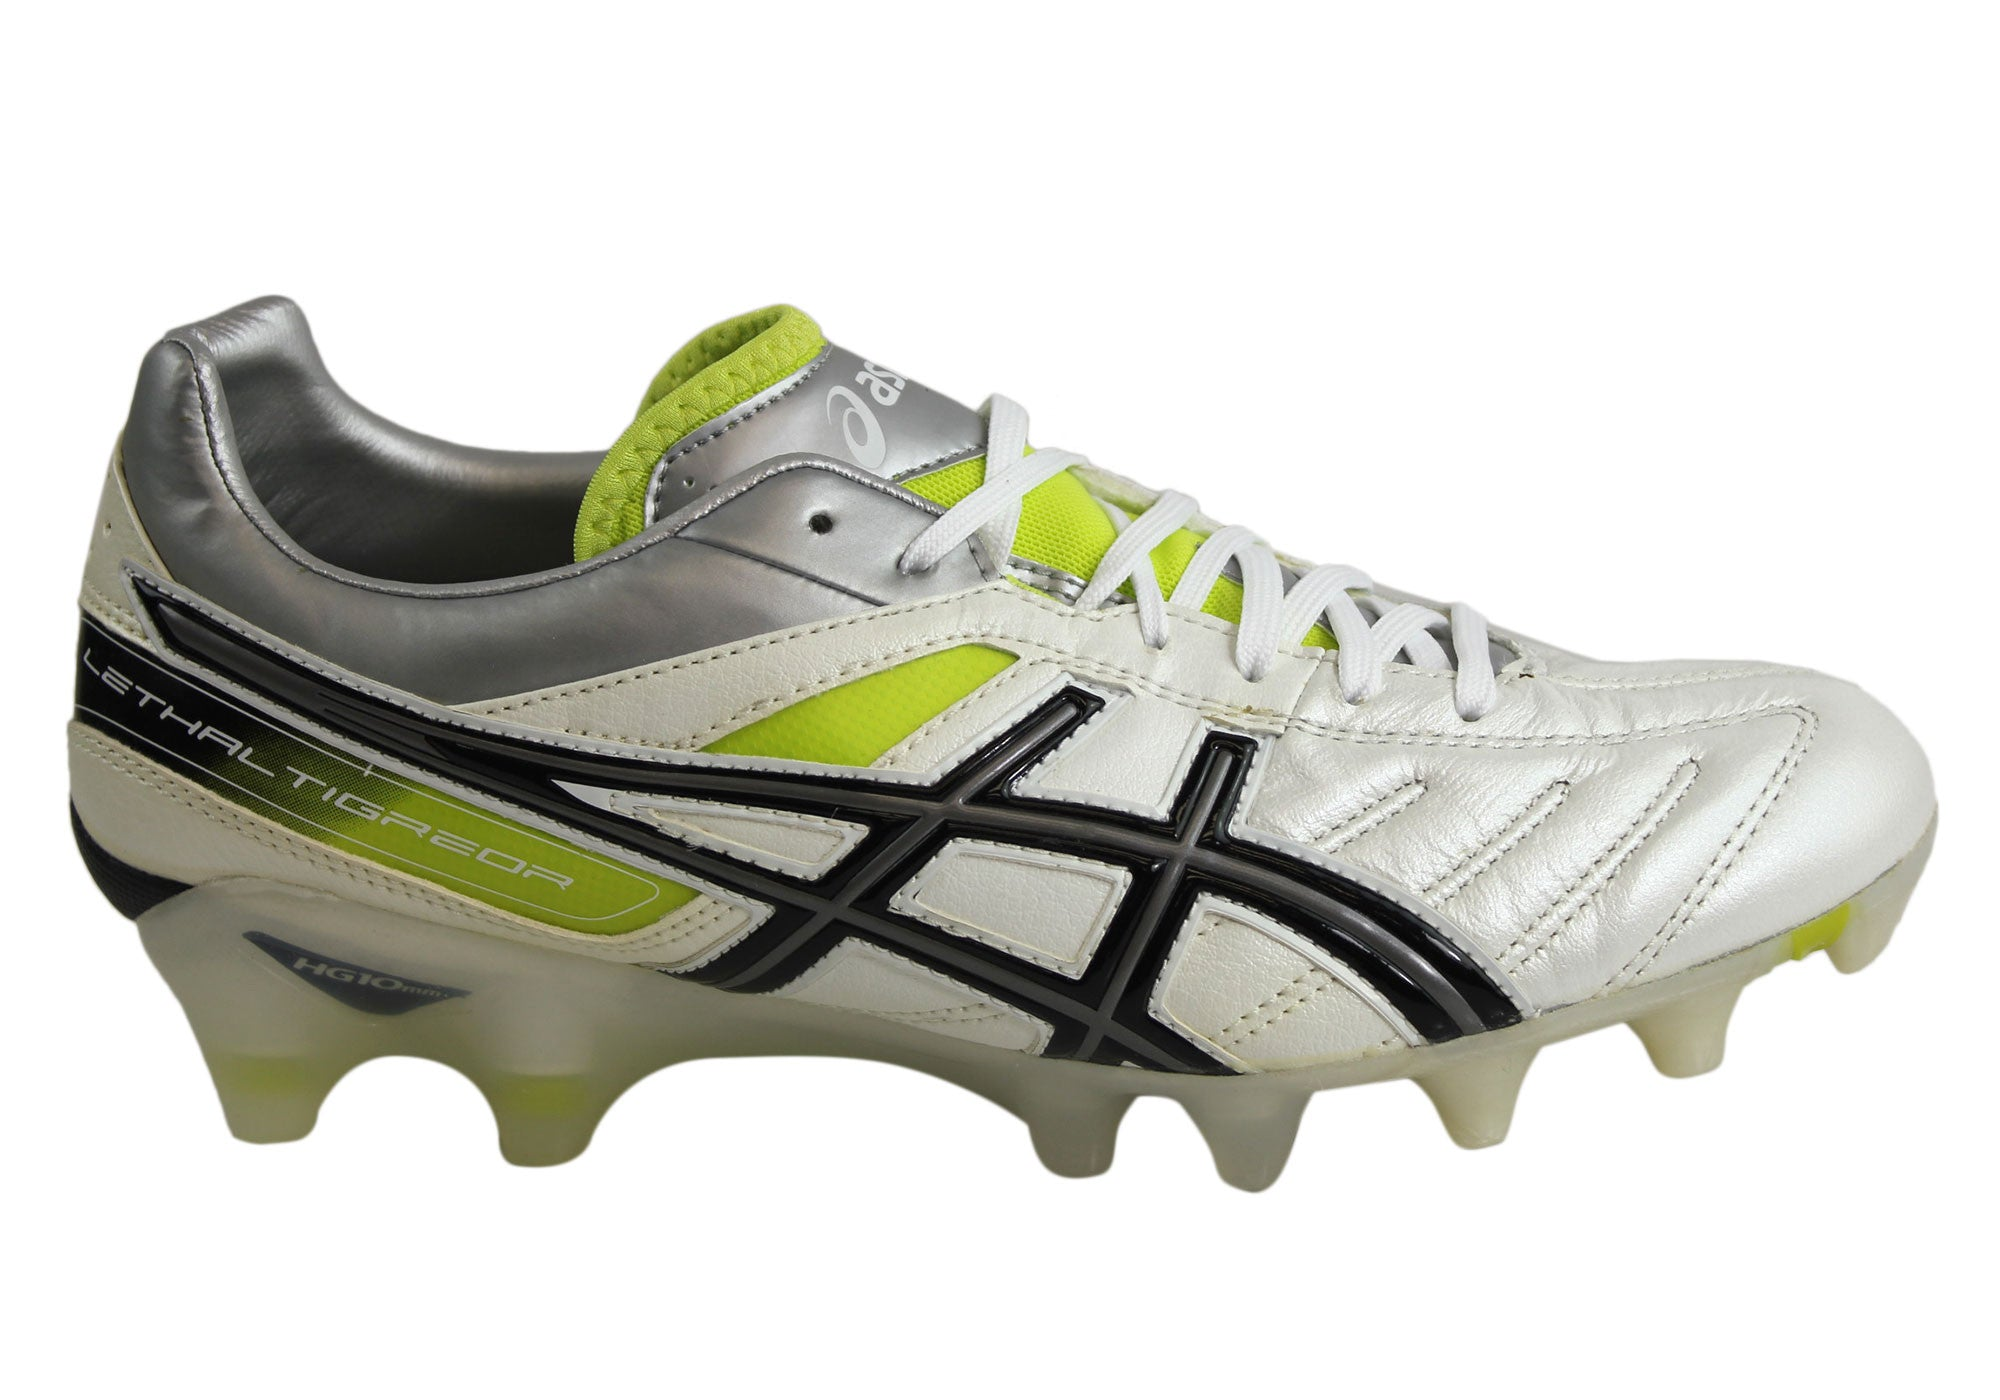 06da7946f25 Asics Lethal Tigreor 4 It Mens Premium Leather Football Boots ...